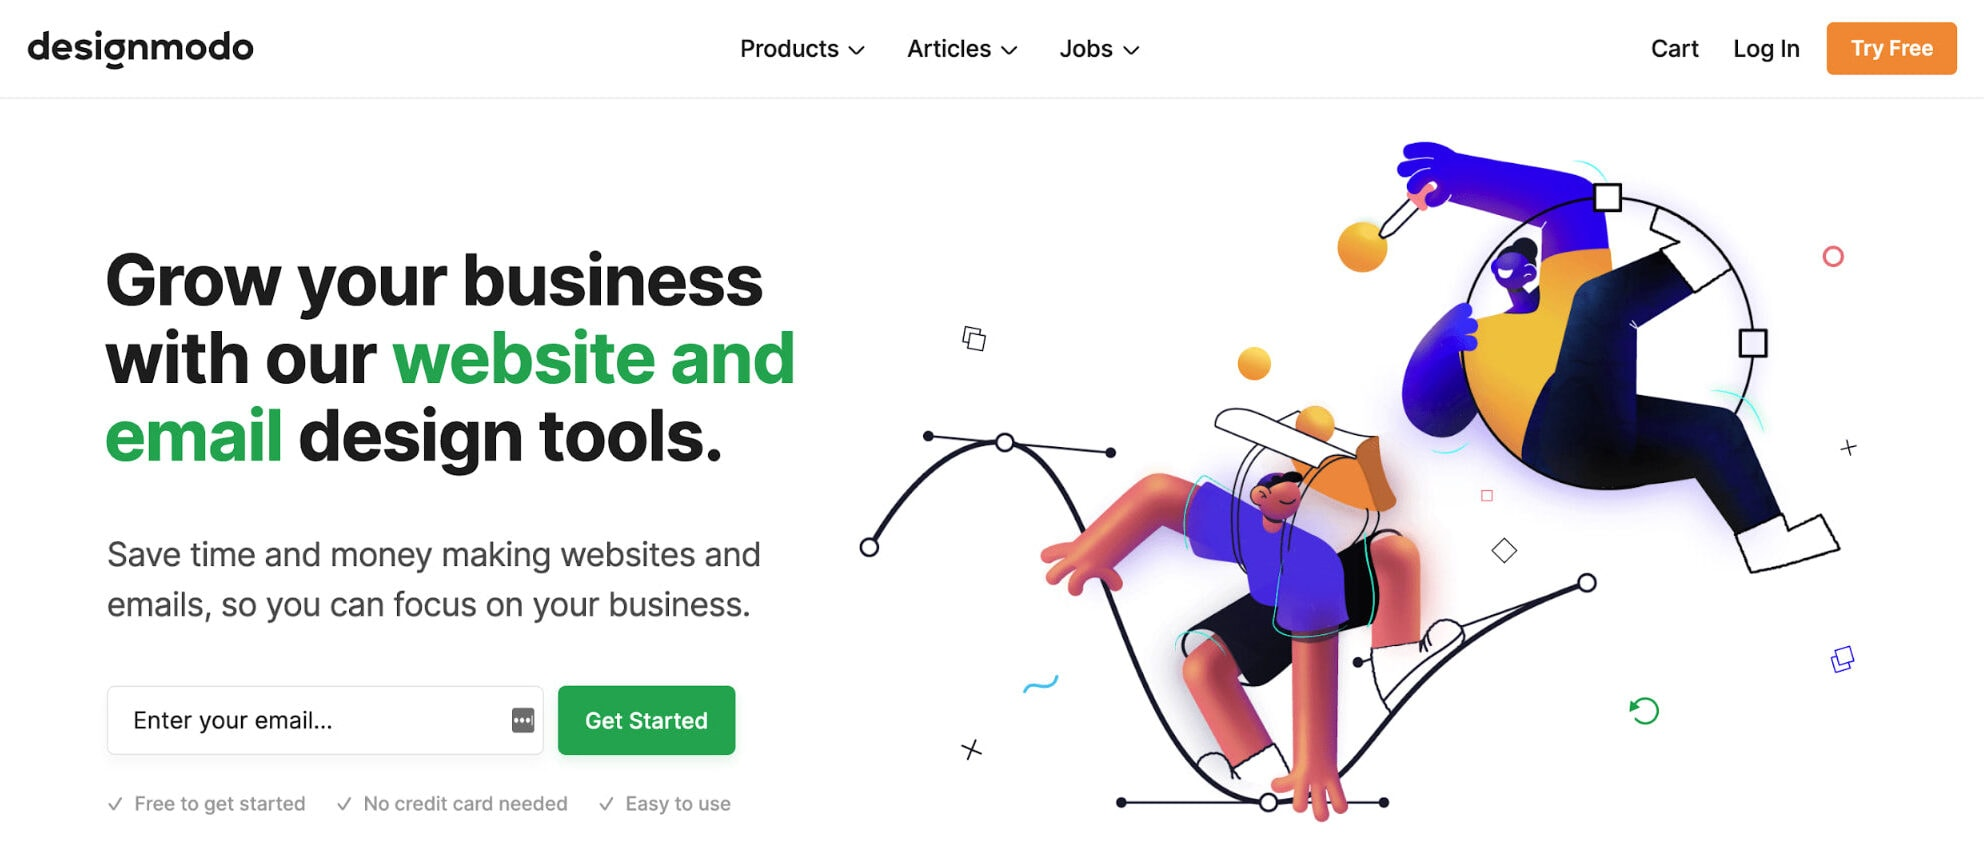 Six Email Marketing Tools for Shopify